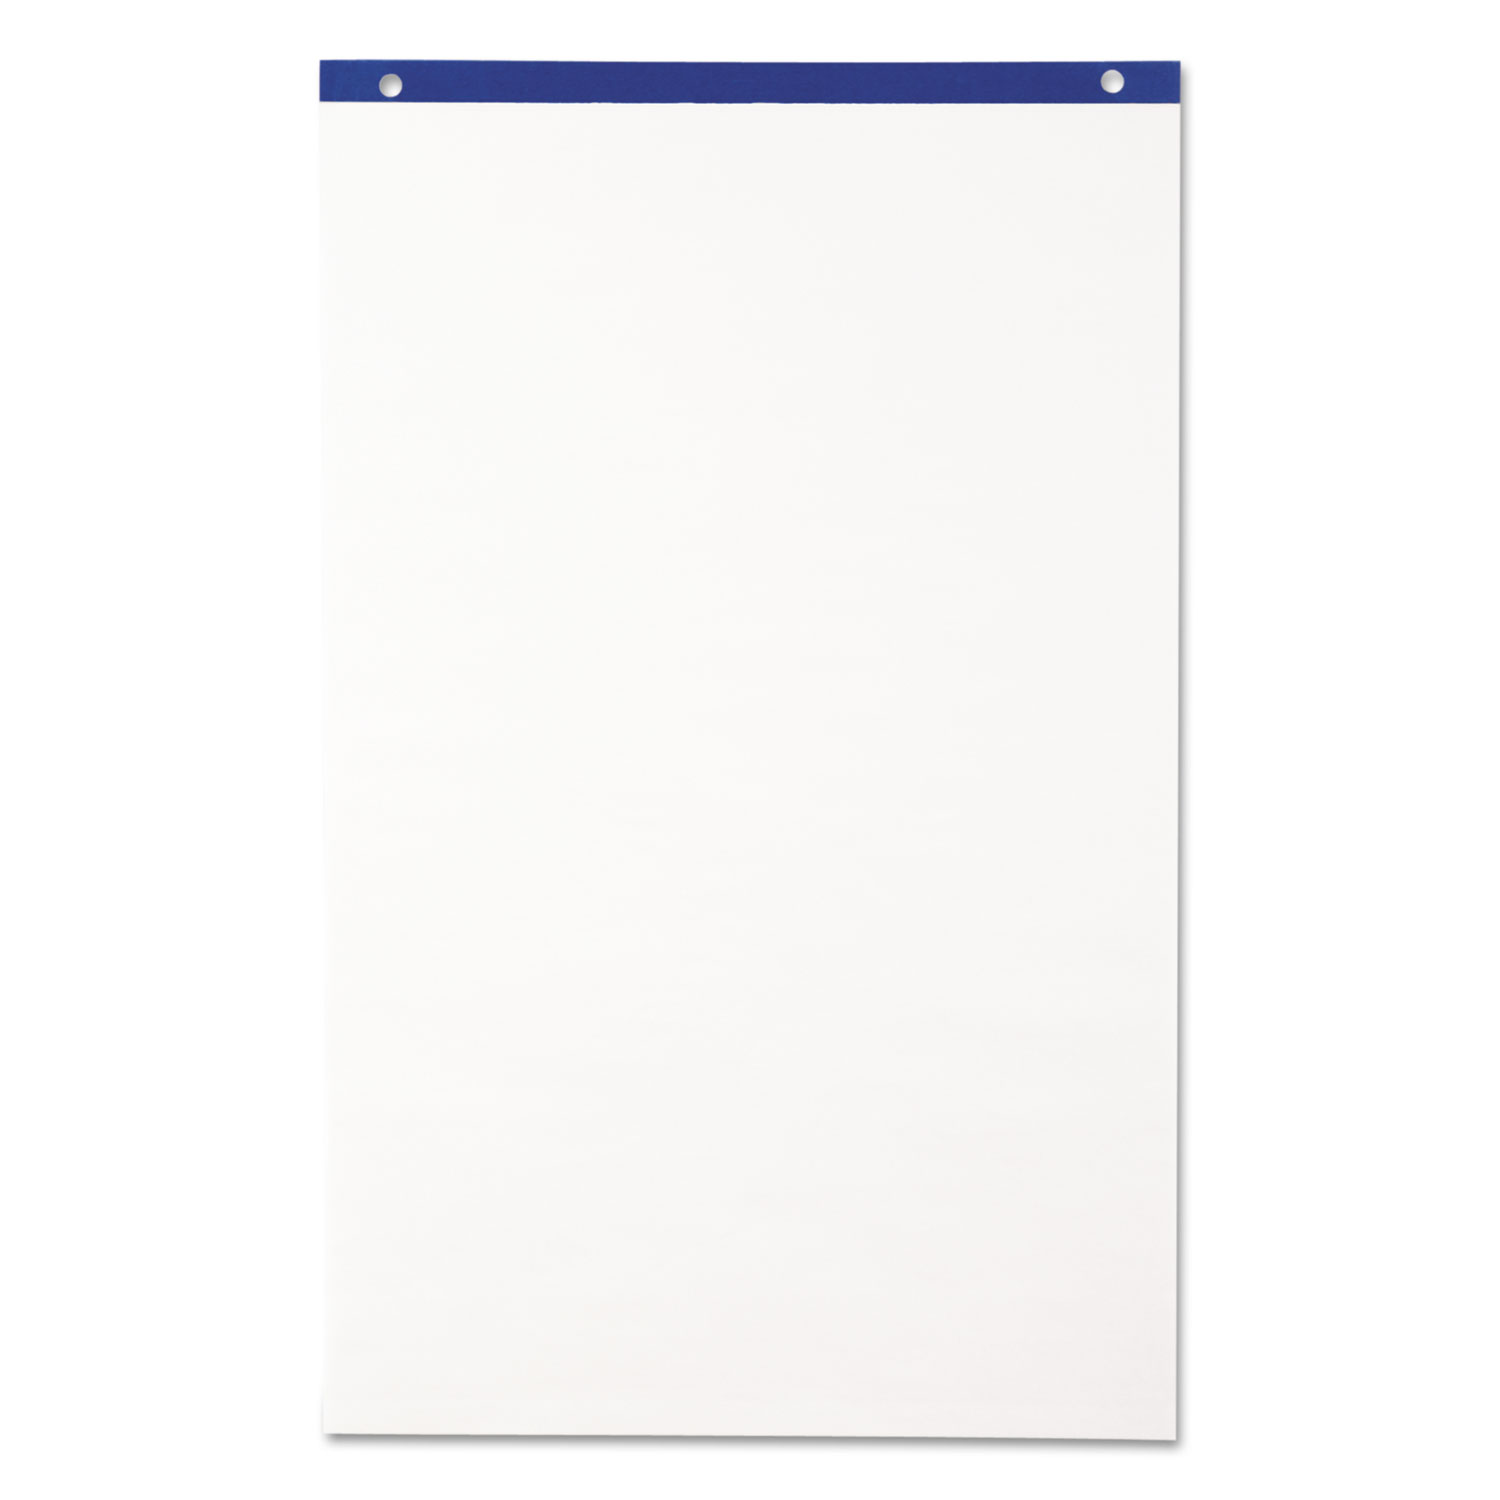 Picture of Conference Cabinet Flipchart Pad, 21 x 33.75, White, 50 Sheets, 4/Carton